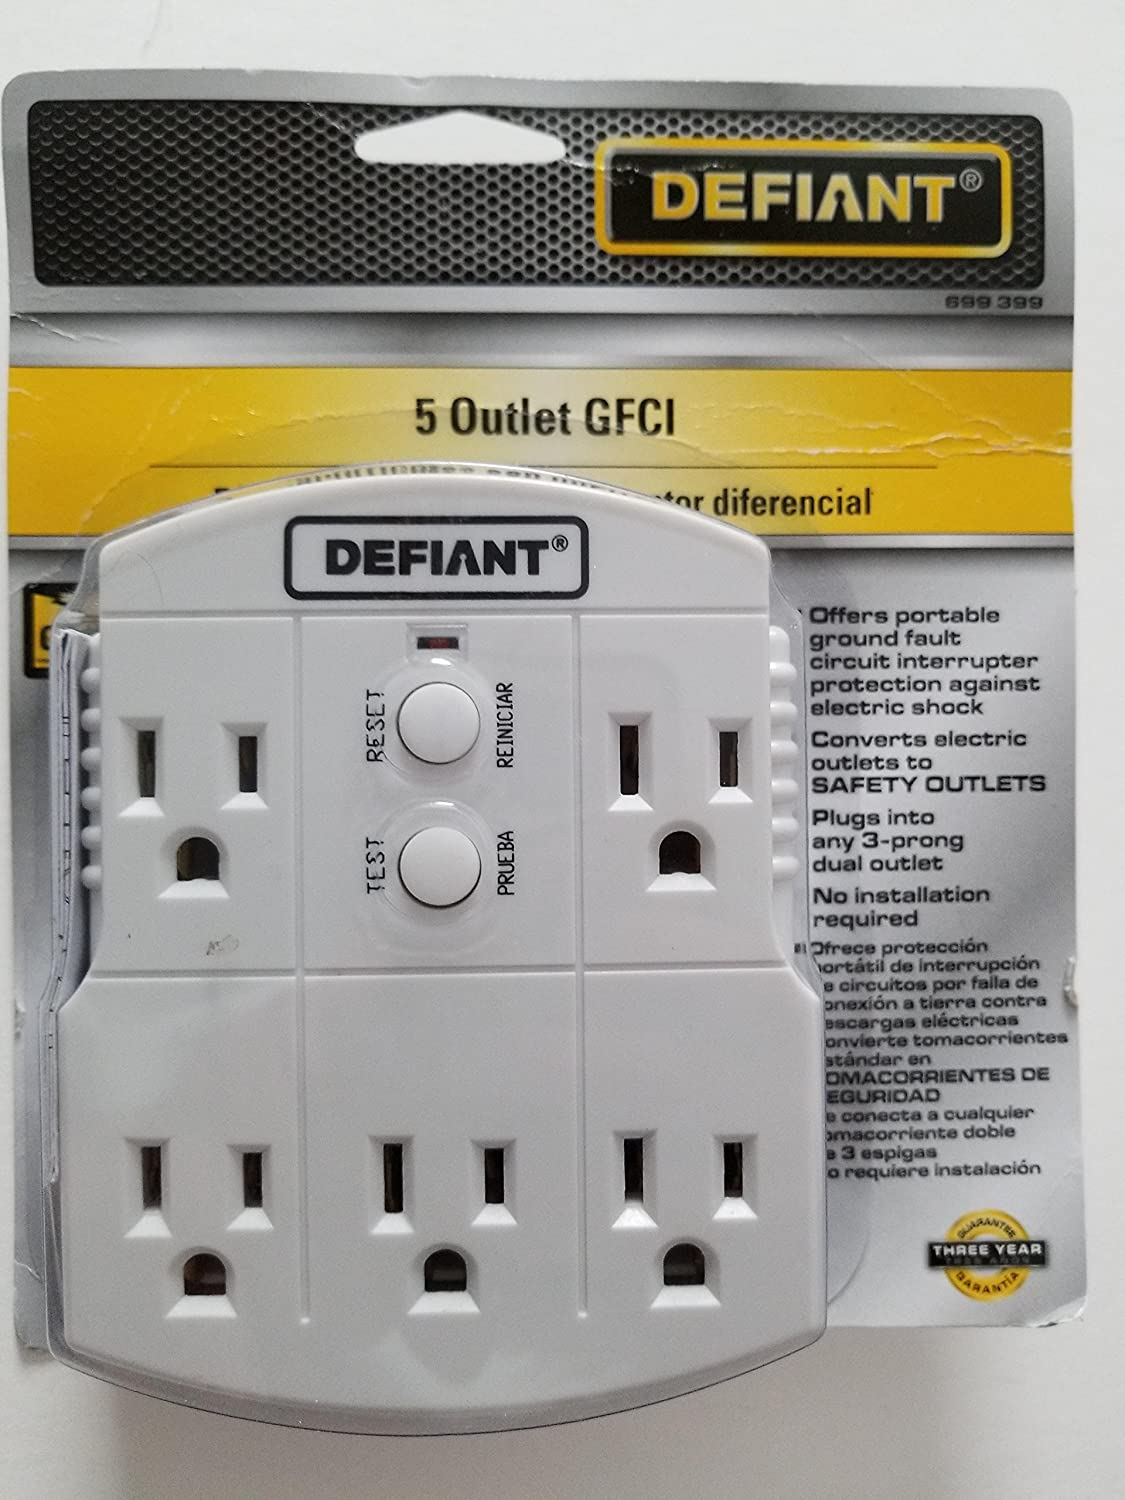 Defiant Gfci 5 Outlet Adapter How To Install Ground Fault Circuit Interrupter